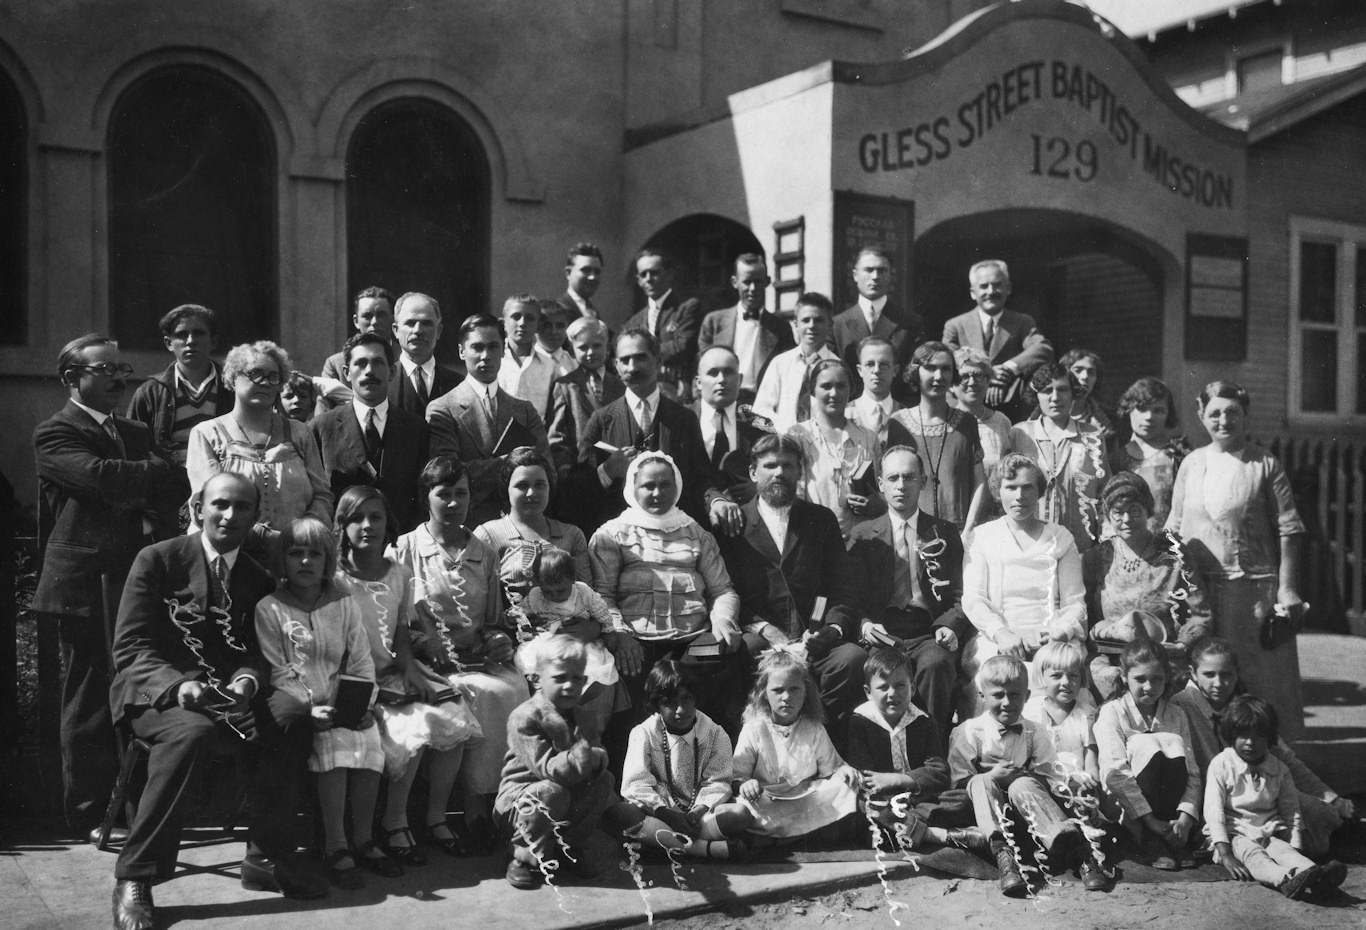 Gless Street Baptist Mission in 1927